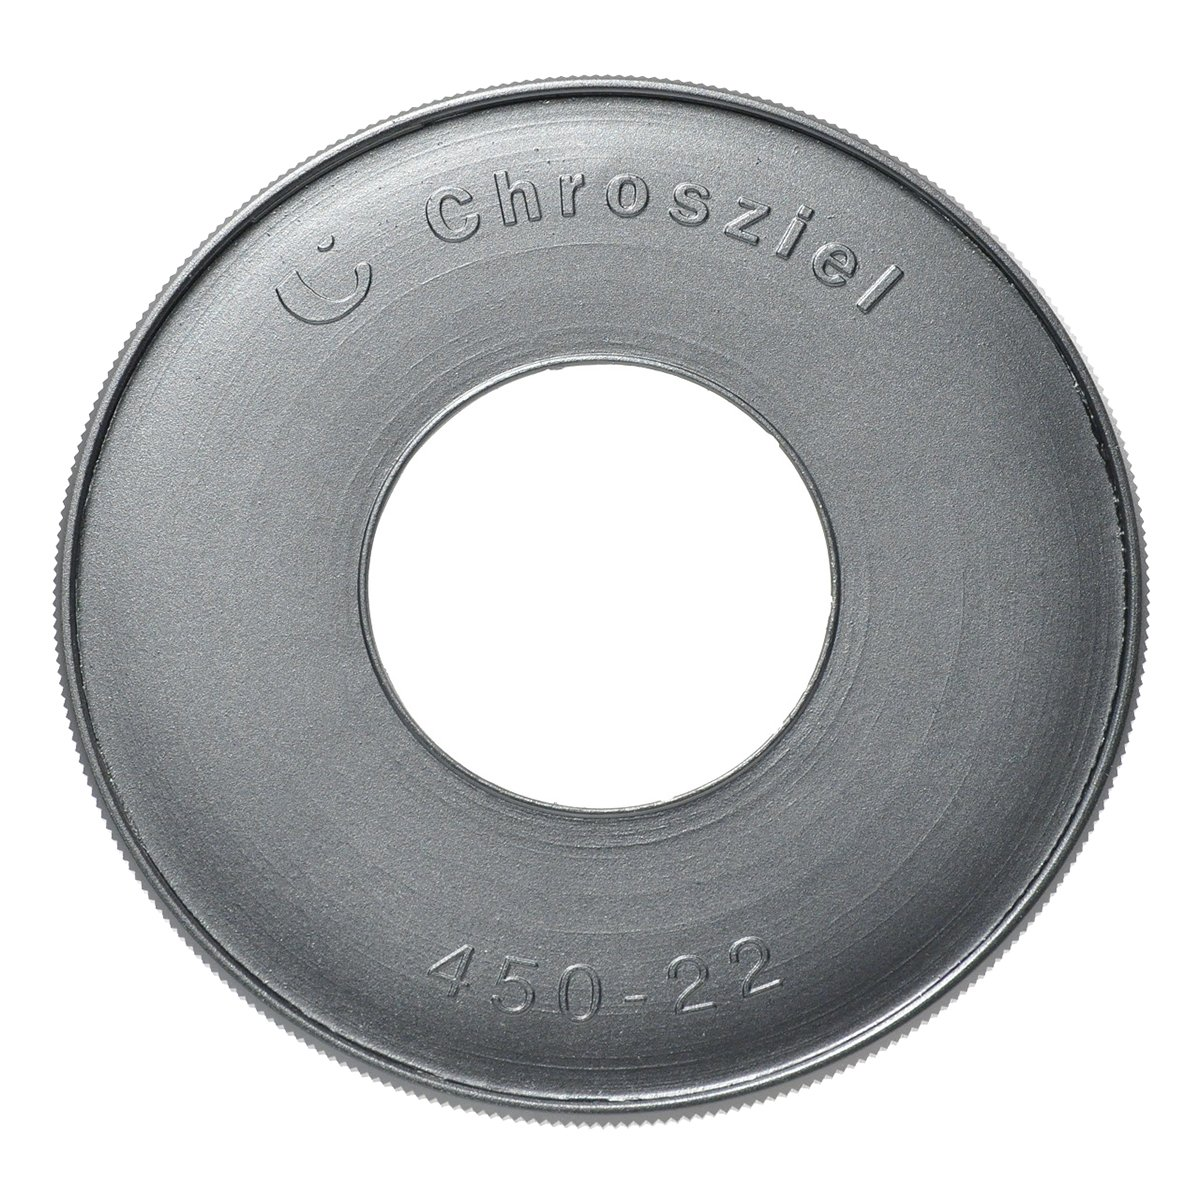 CHROSZIEL C-450-22 Flexi-Ring 110mm for Lenses of 50MM to 85MM Diameter, Use with 450-R21 Matte Box (Black)